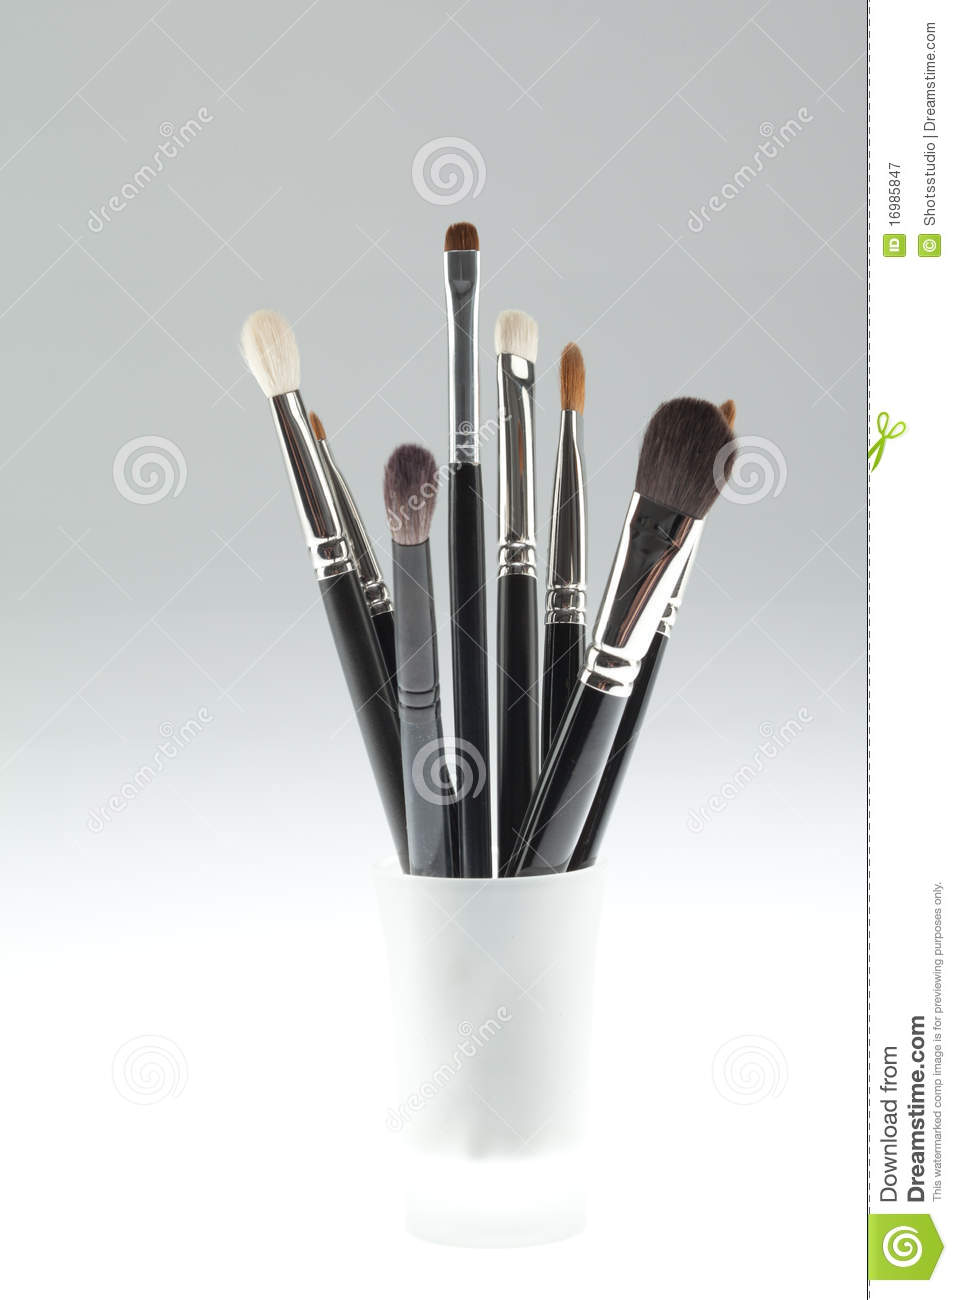 A set of make-up brushes set in a small glass